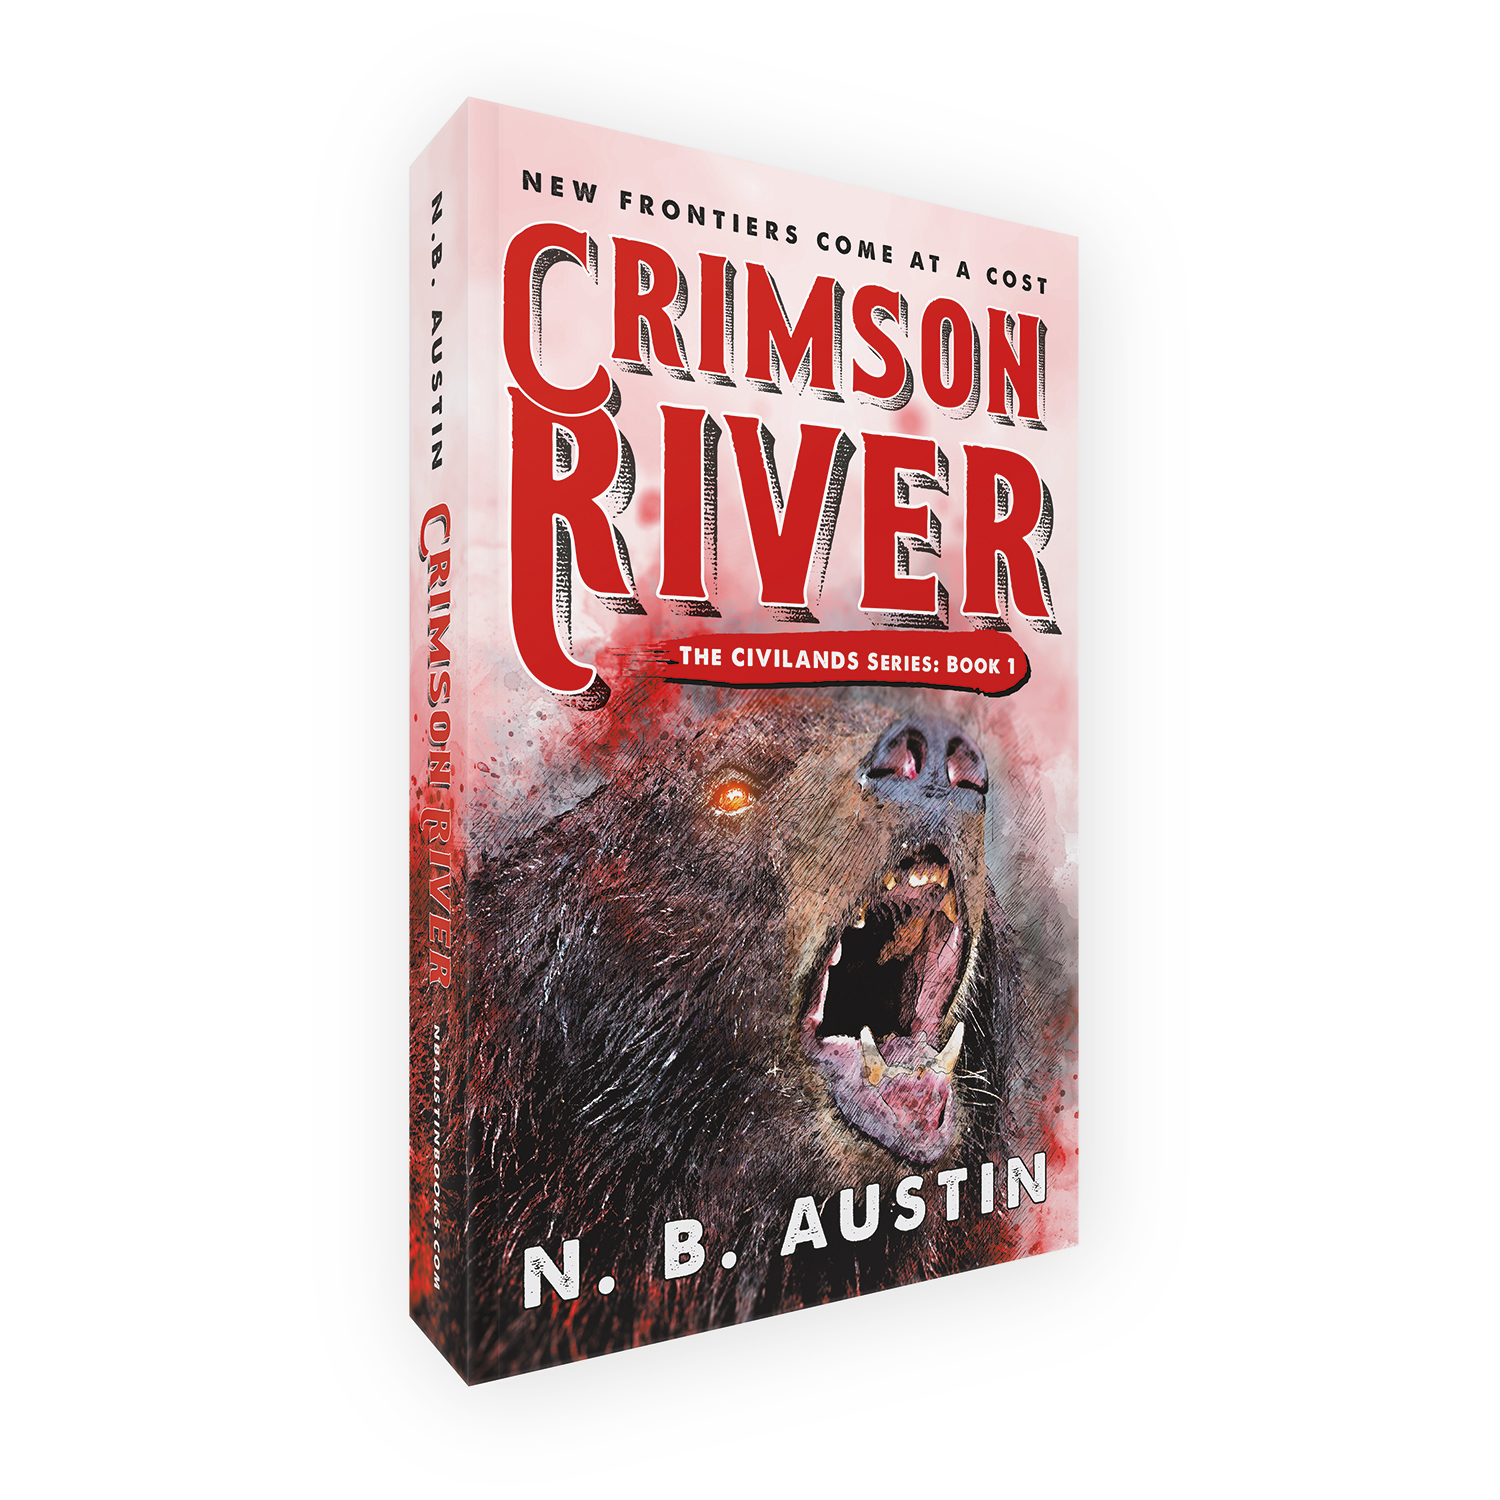 'Crimson River' is book one in an alt-history mystical Western adventure series, by author NB Austin. The book cover & interior were designed by Mark Thomas, of coverness.com. To find out more about my book design services, please visit www.coverness.com.